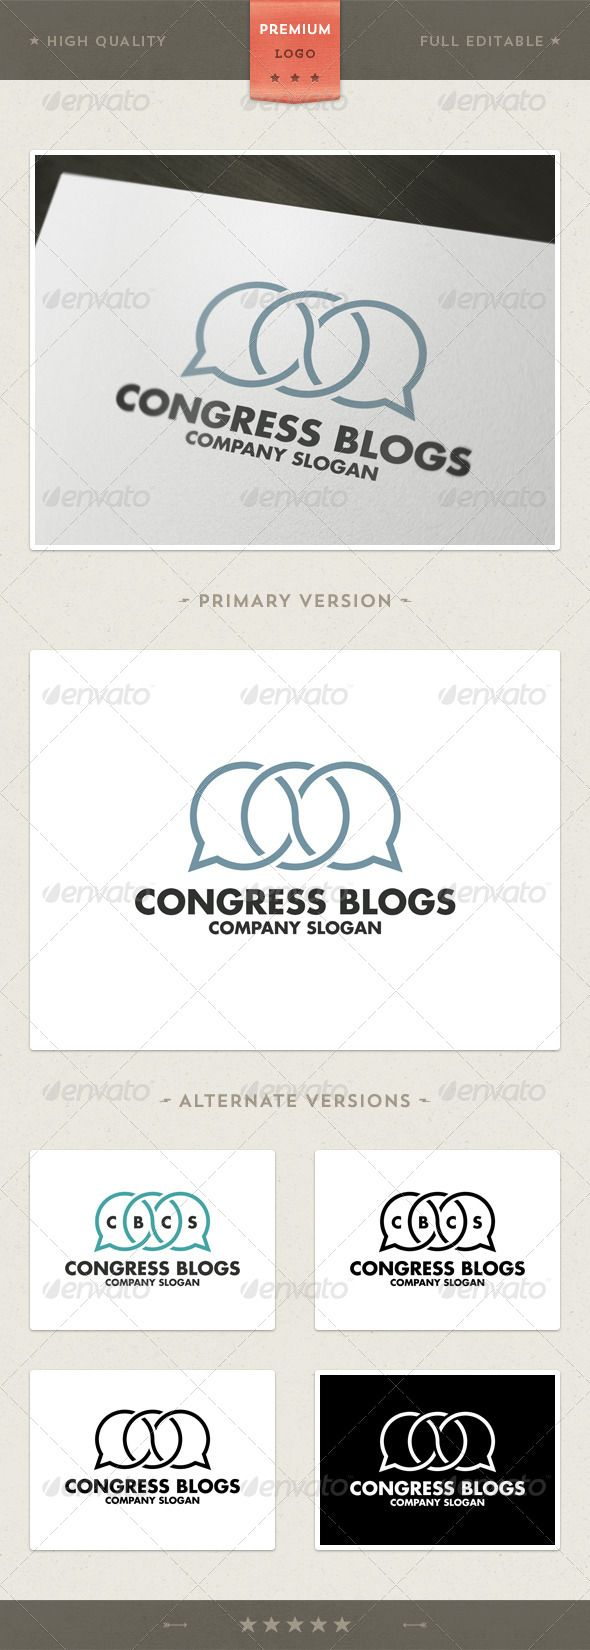 17 best images about job 3 logos talk to me and congress logo template